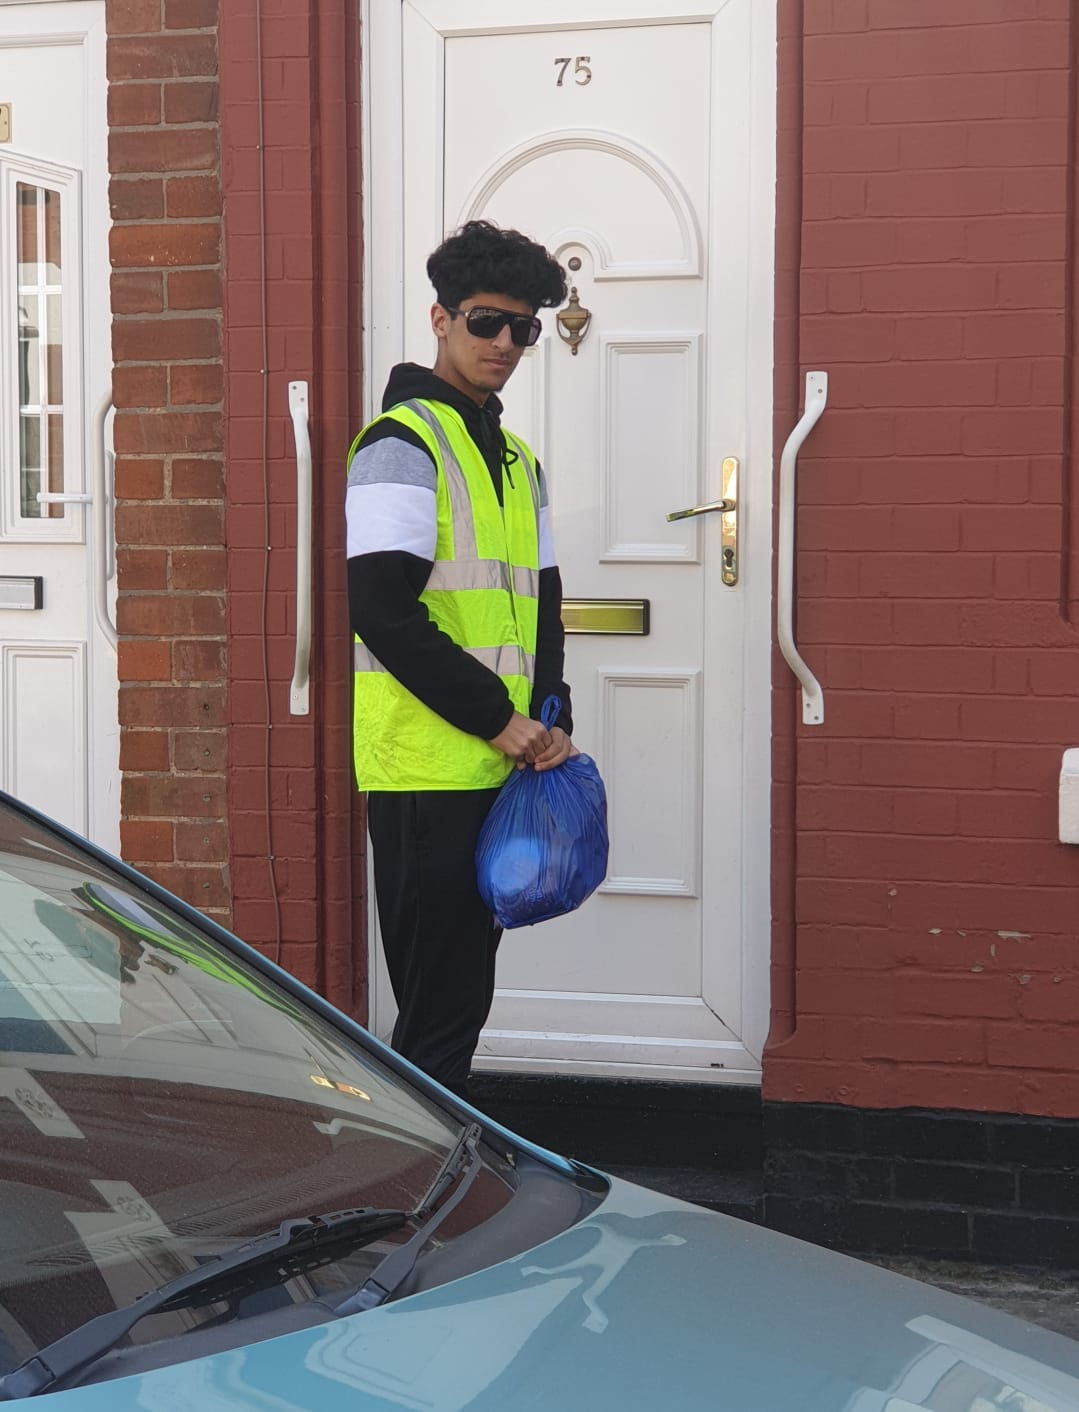 One of our young volunteers who have been helping to deliver parcels in these difficult times.